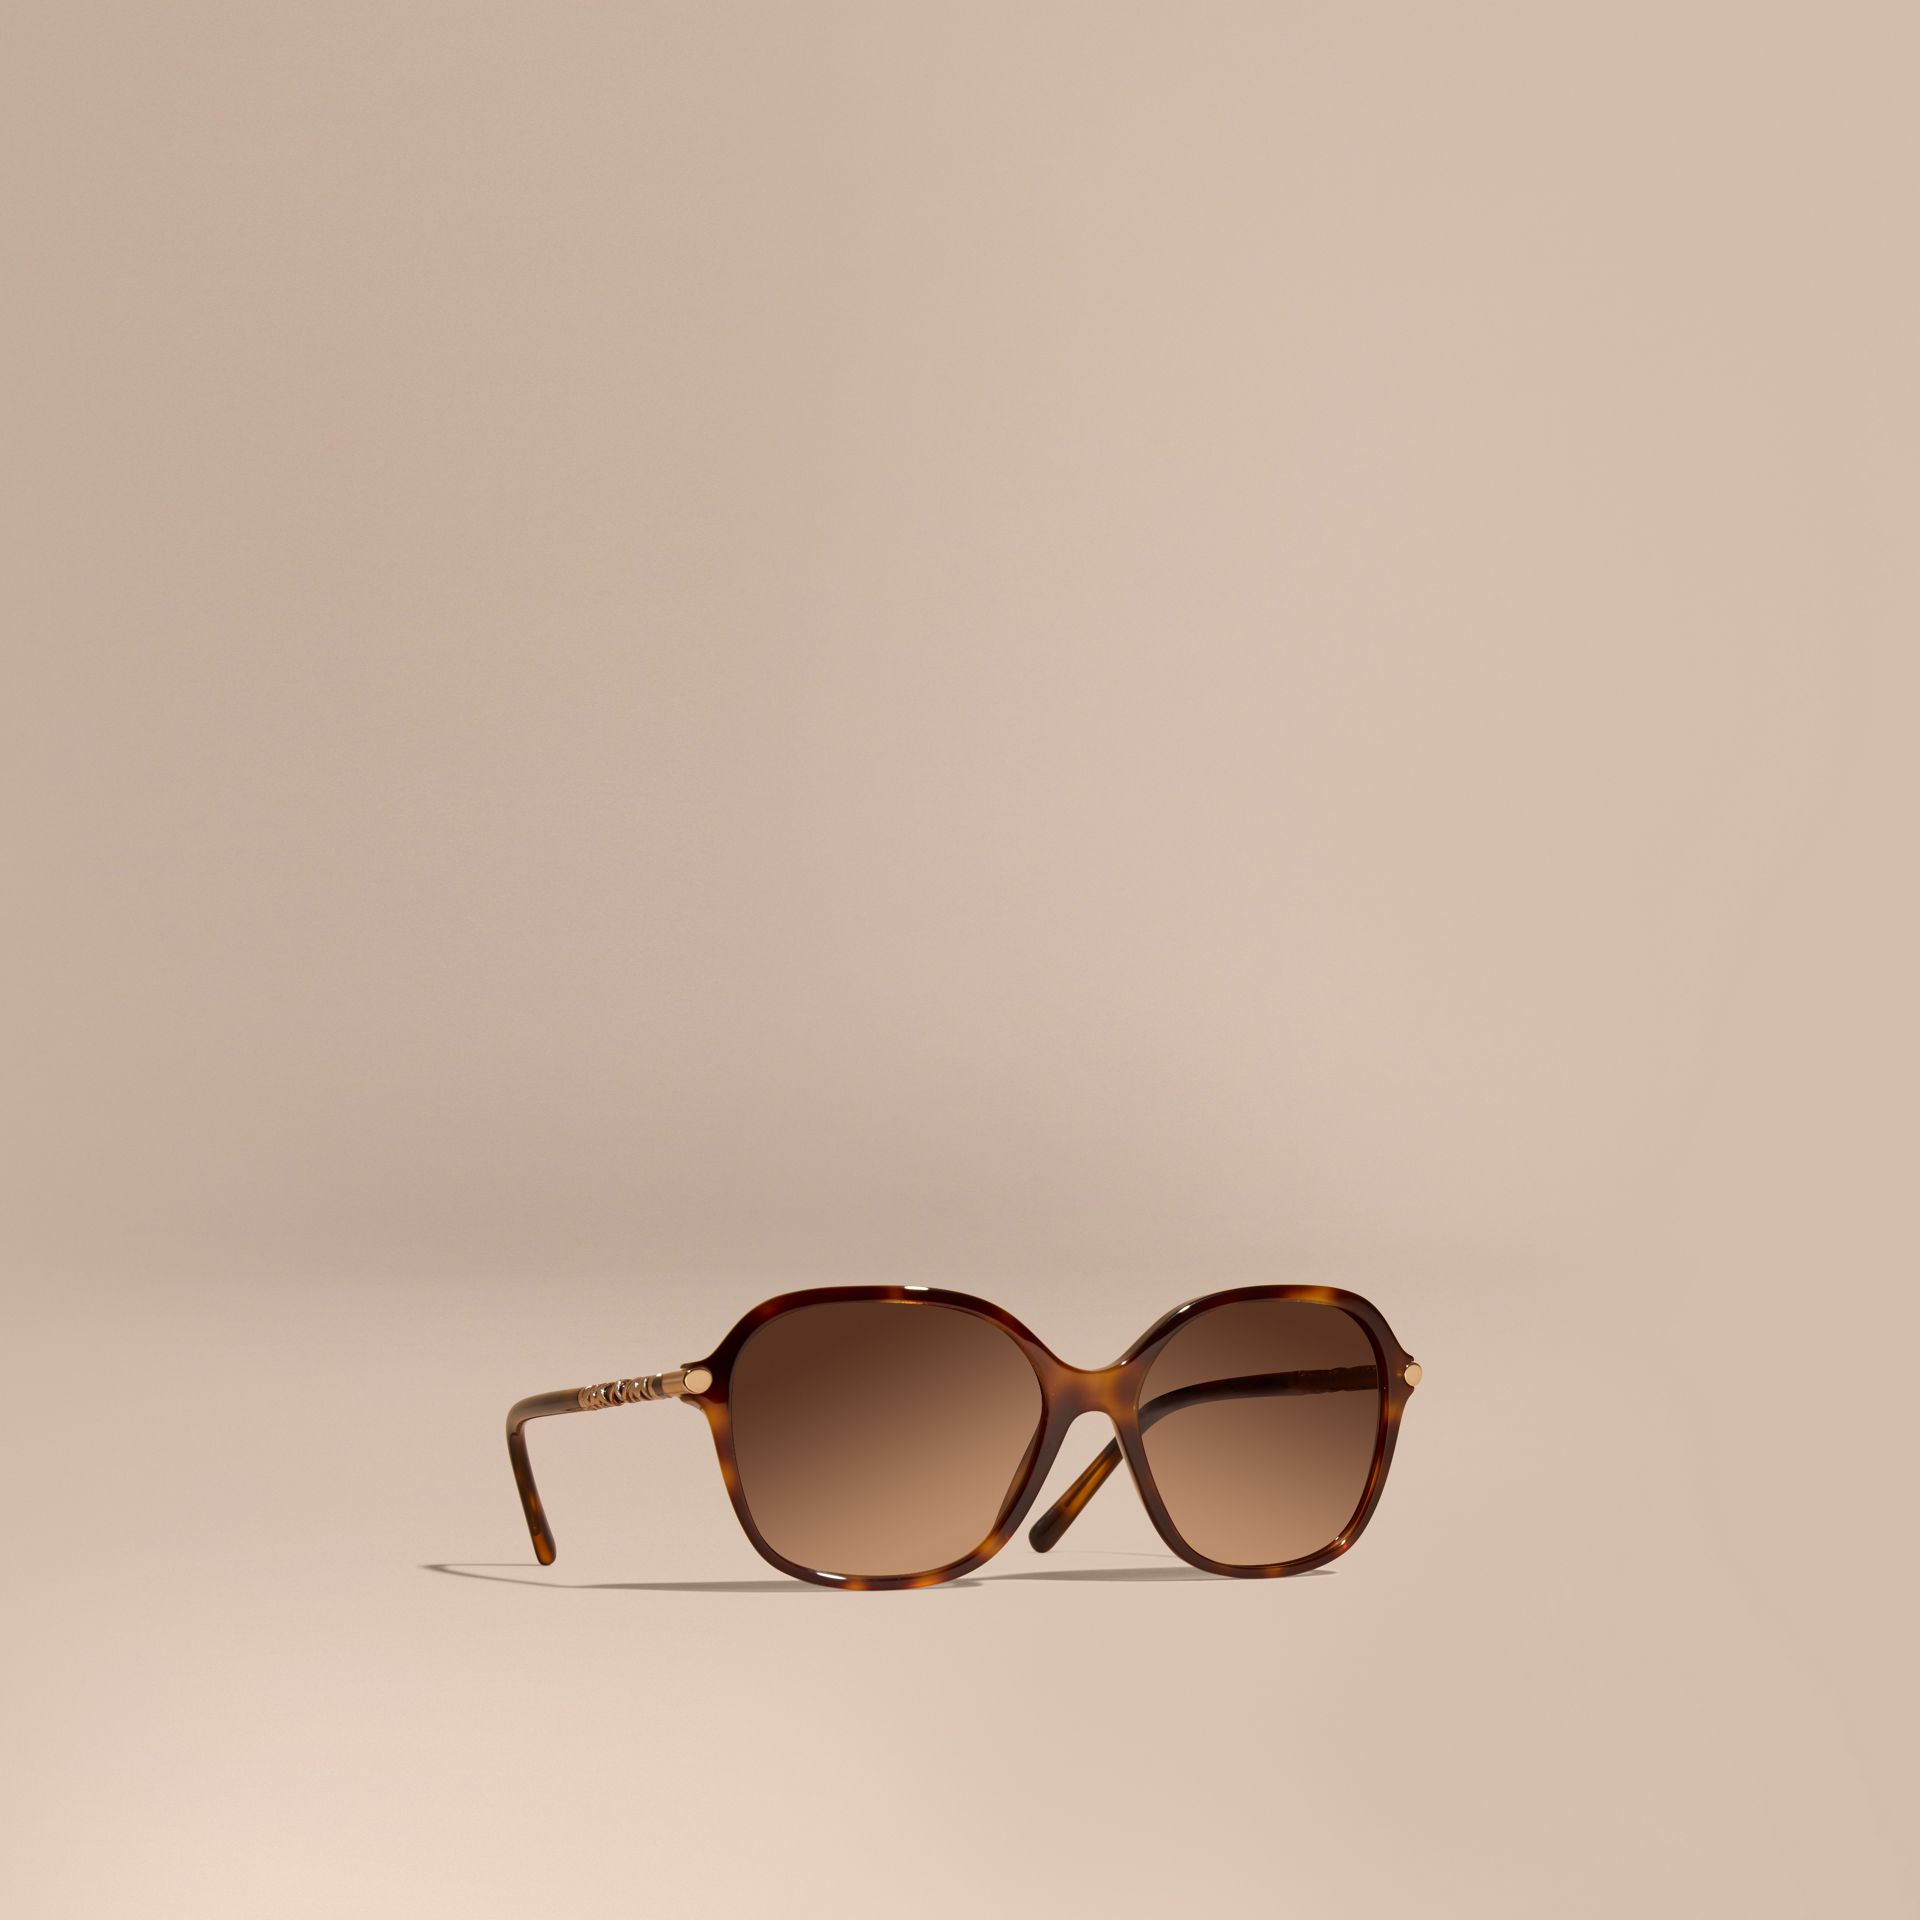 Check Detail Round Frame Sunglasses Light Russet Brown - gallery image 1